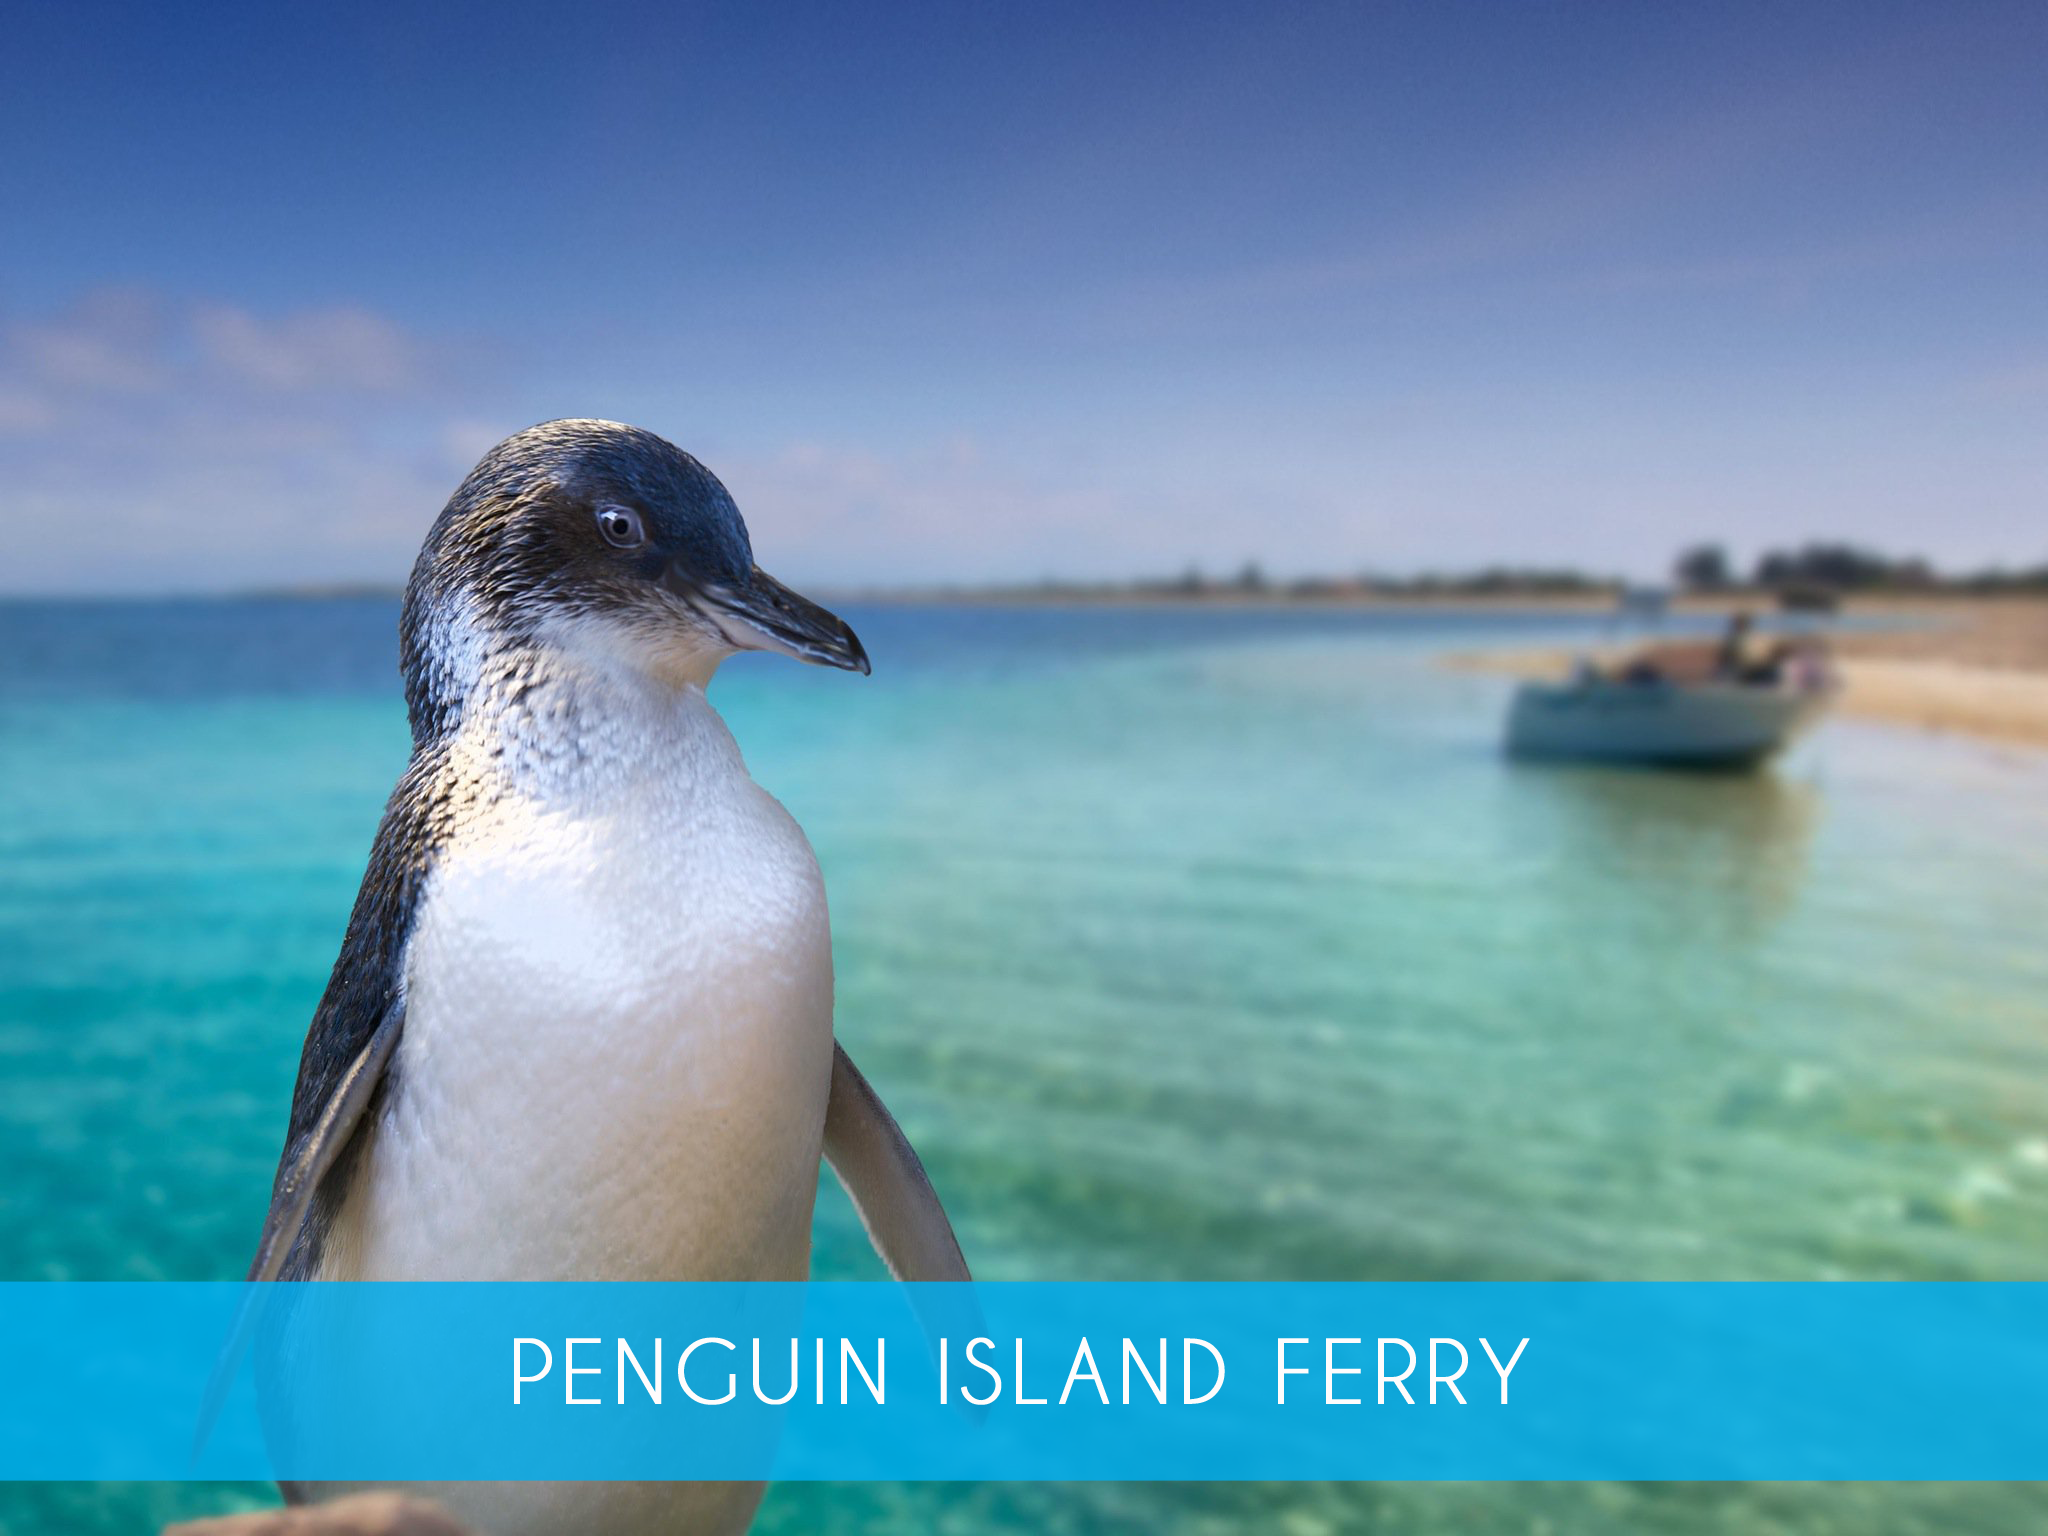 Penguin Island FerrY   A five minute ferry ride is all it takes to meet the world's smallest penguins and soak up the beauty of Perth's island nature reserve    Adults from $18 or $27 inc Penguin Feeding  More Info